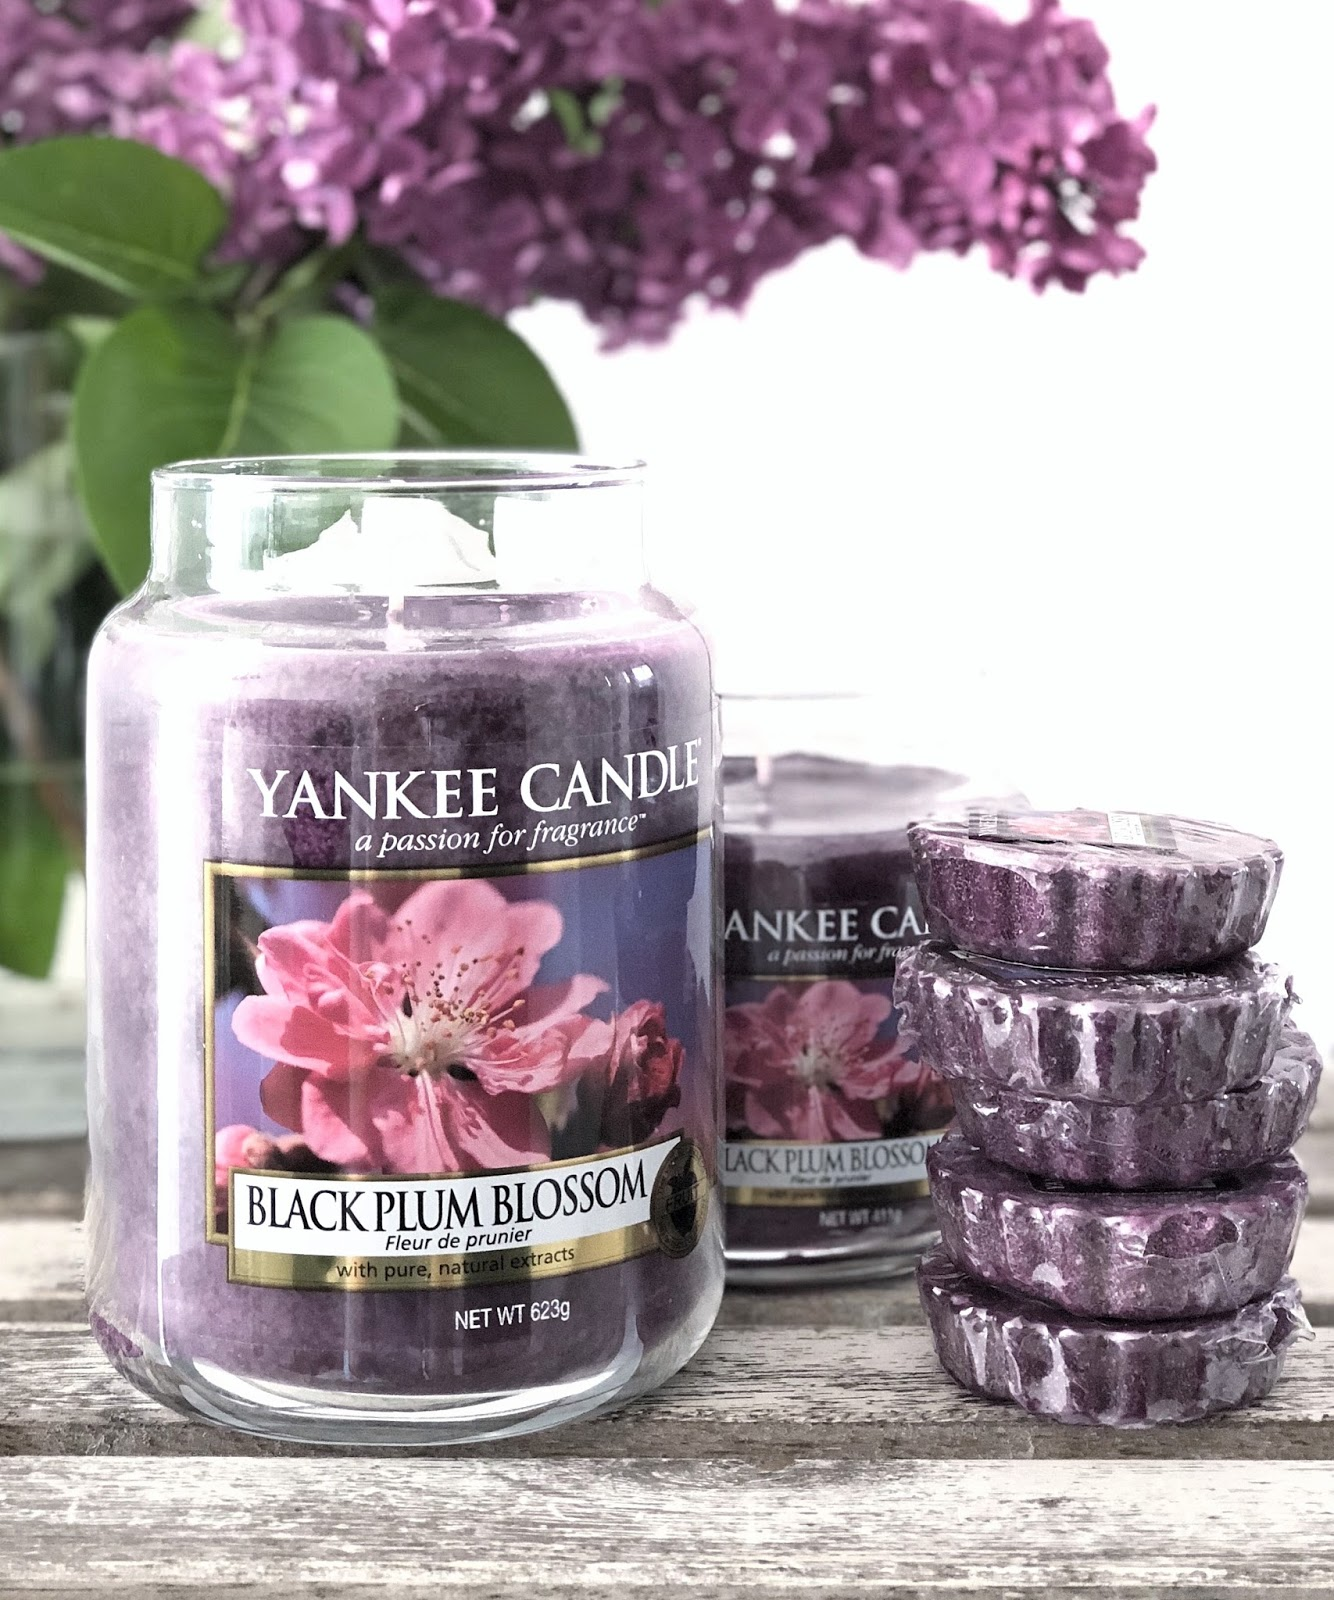 Black-Plum-Blossom-Yankee-Candle